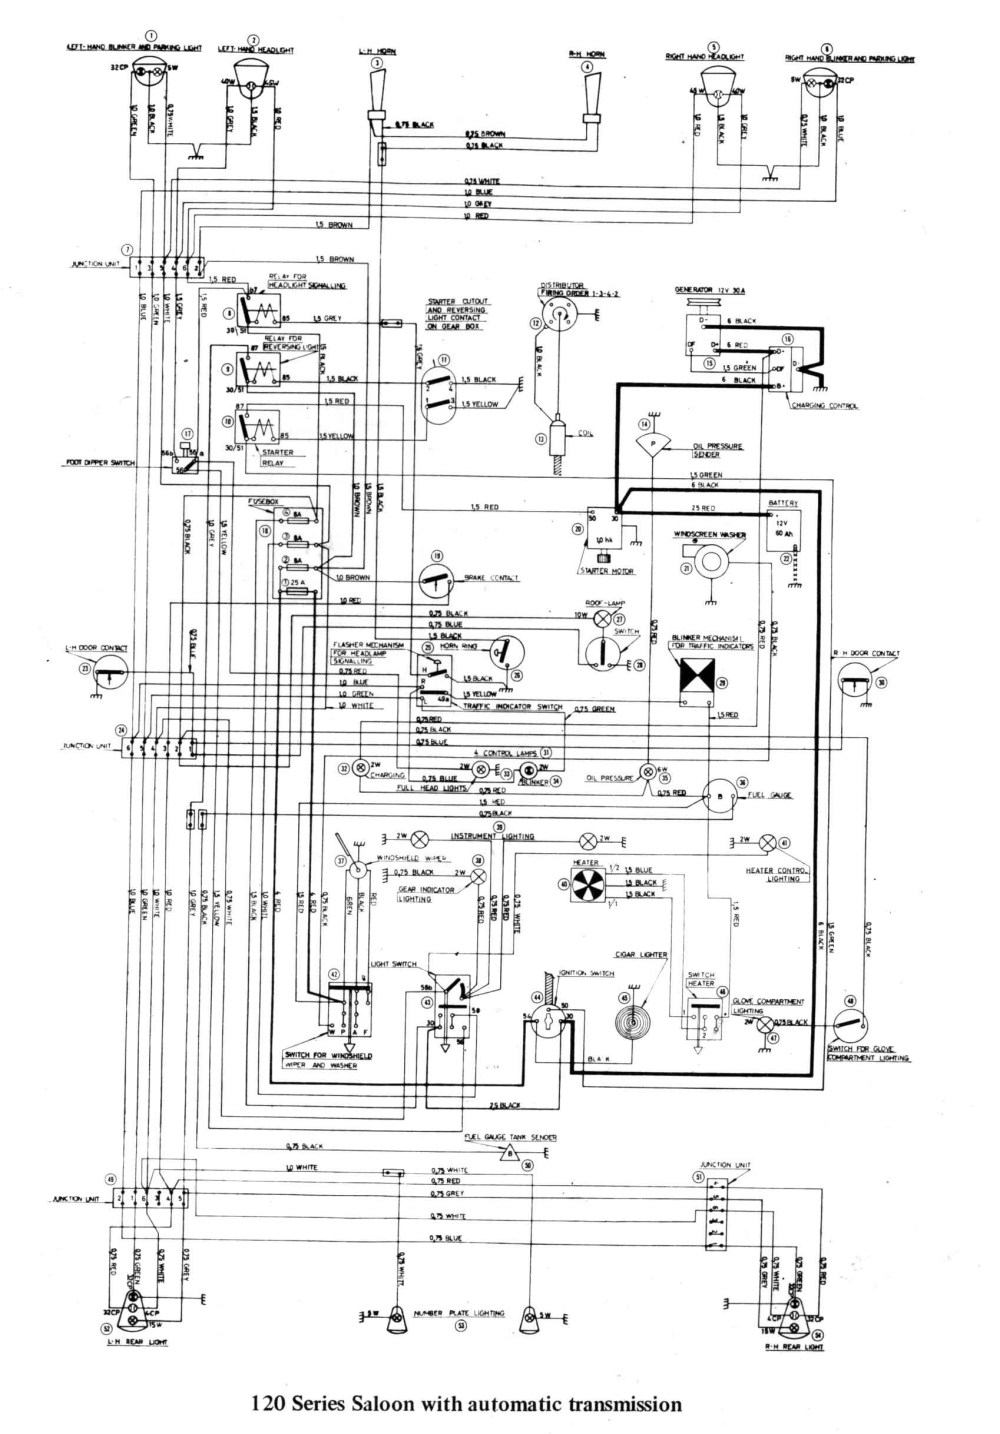 medium resolution of volvo wiring diagram wiring diagram schematics 2007 volvo vn ecm wiring schematic volvo c70 wiring diagram